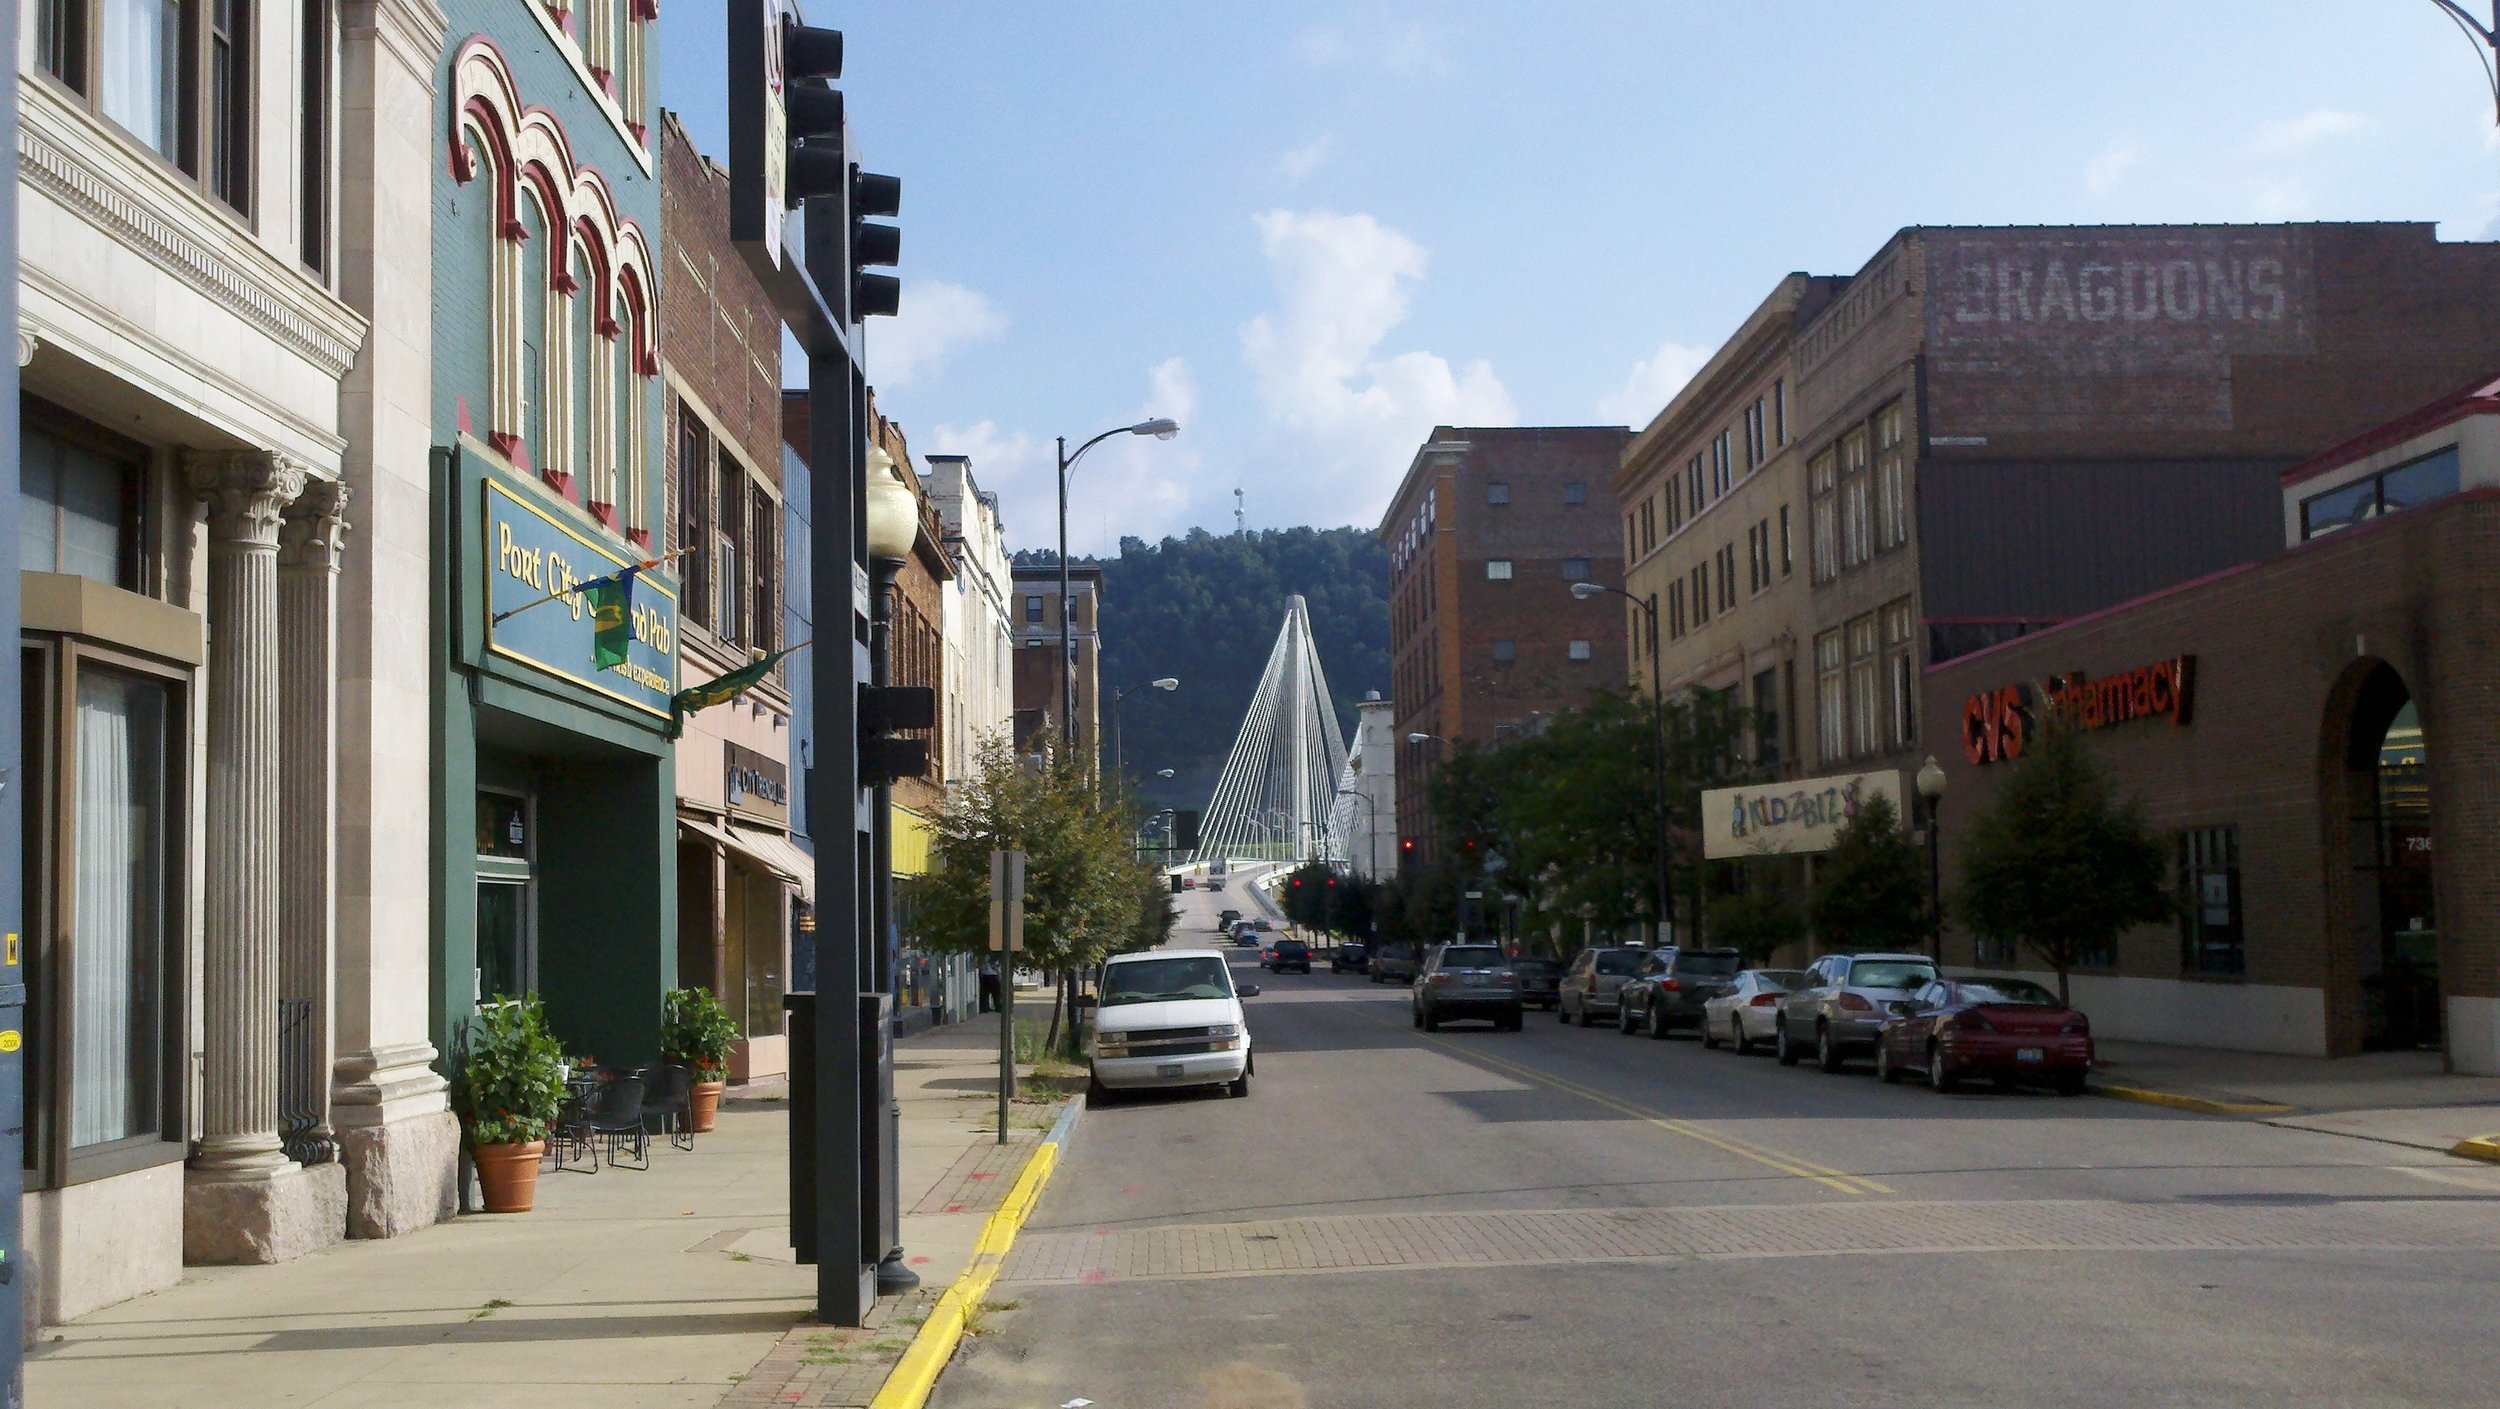 Portsmouth, OH is located at the confluence of the Ohio and Scioto Rivers in Scioto County